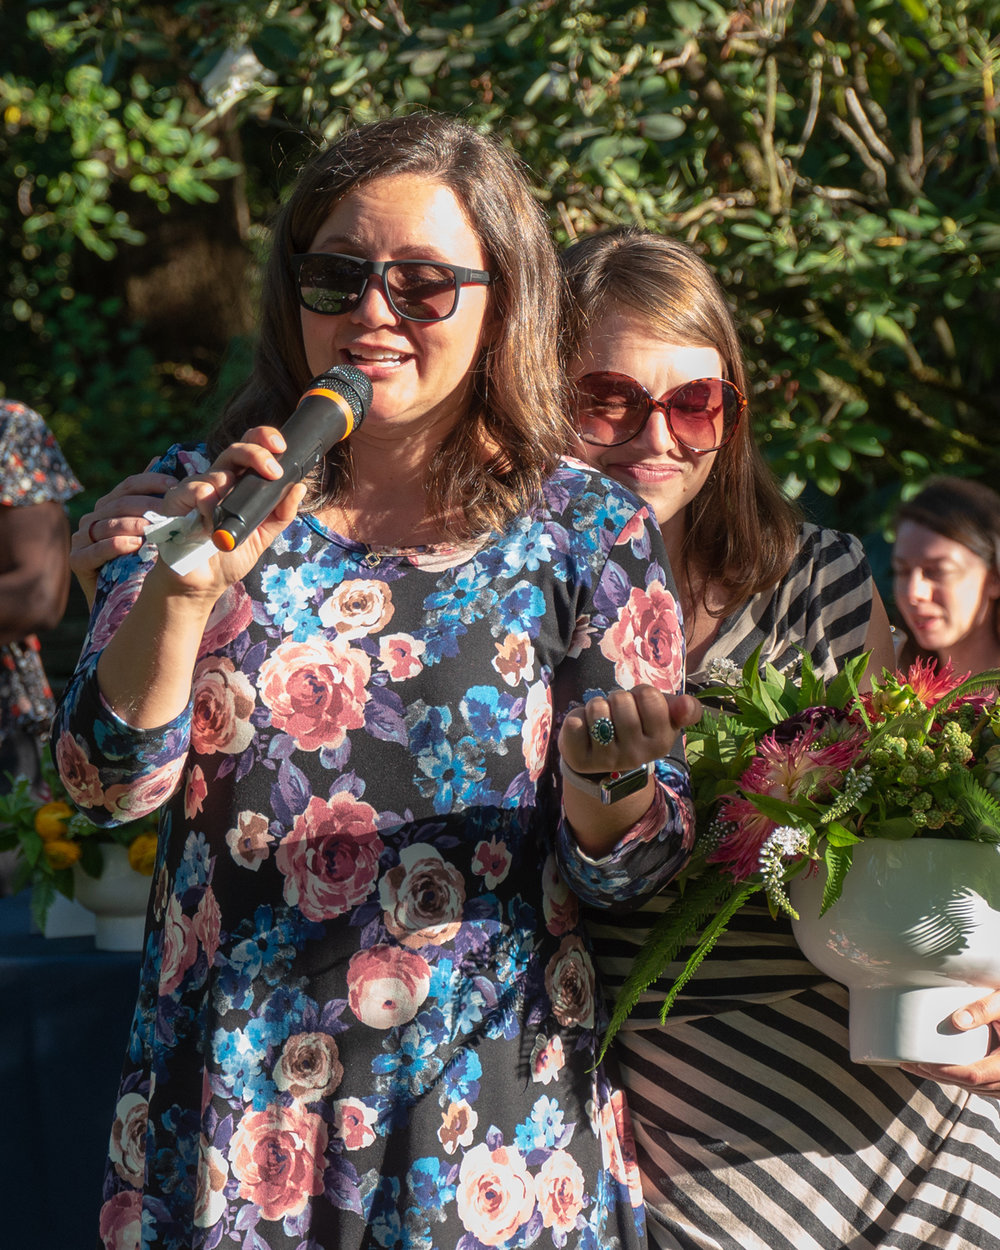 Wasim Muklashy Photography_ECO Garden Party 2018_135.jpg